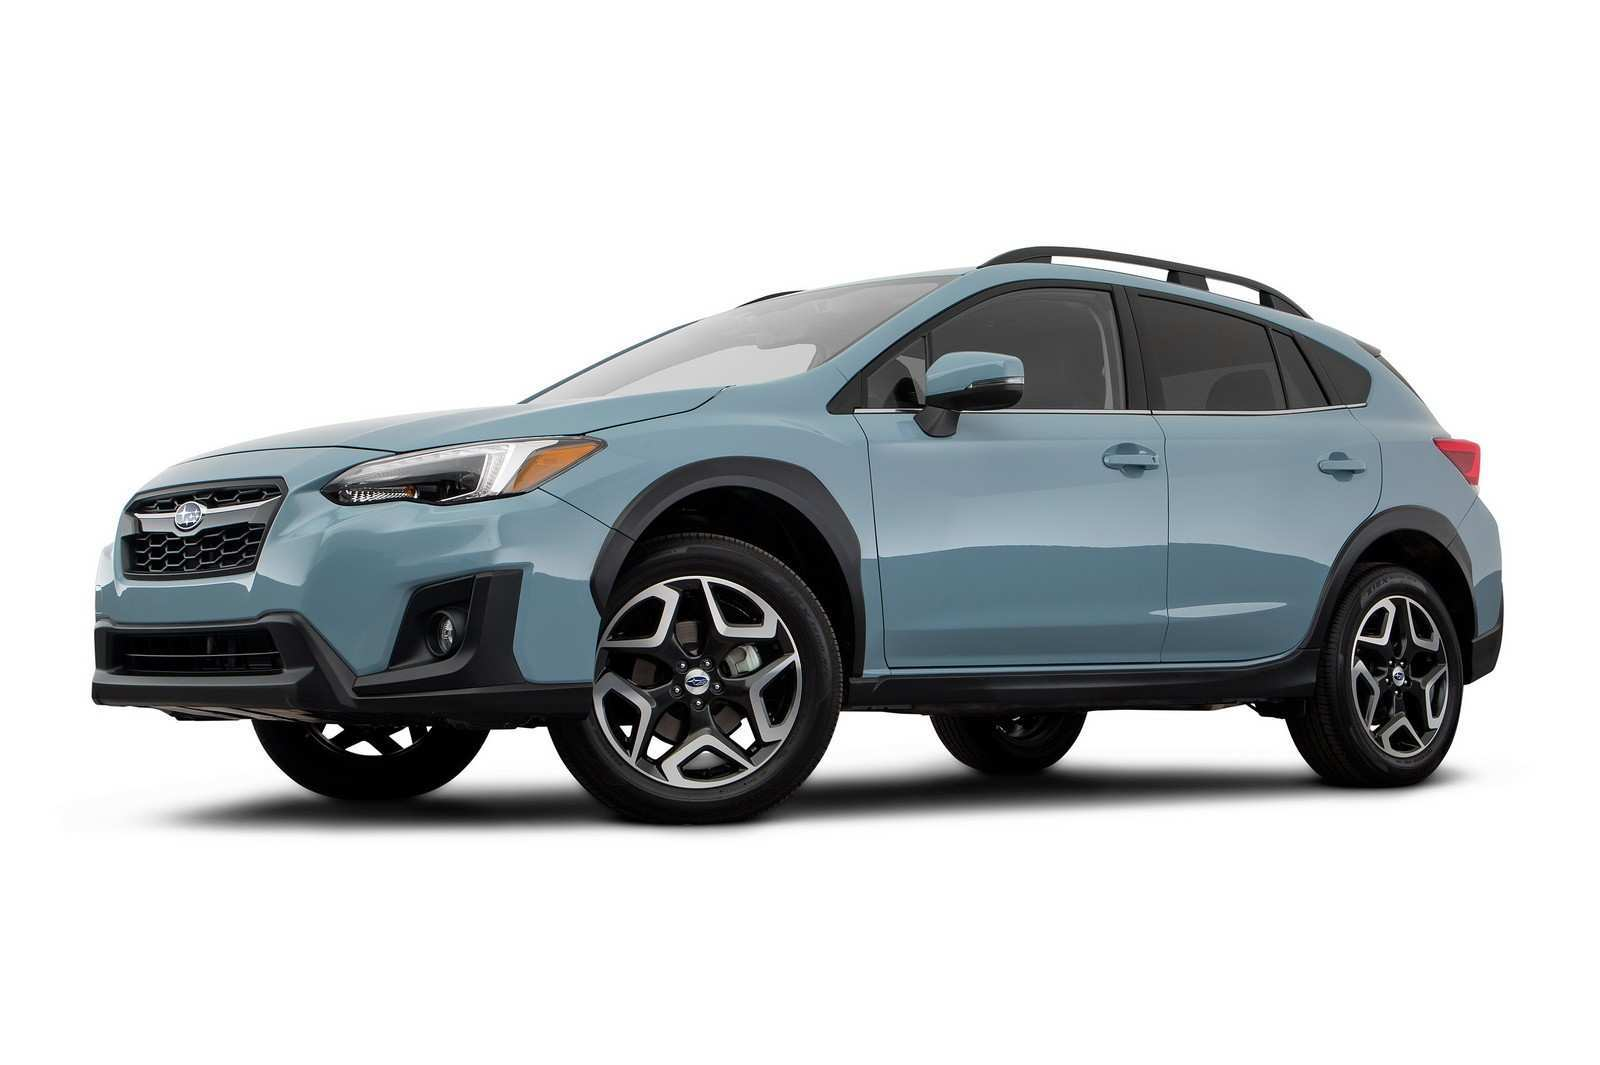 84 All New Subaru Electric Car 2019 Prices